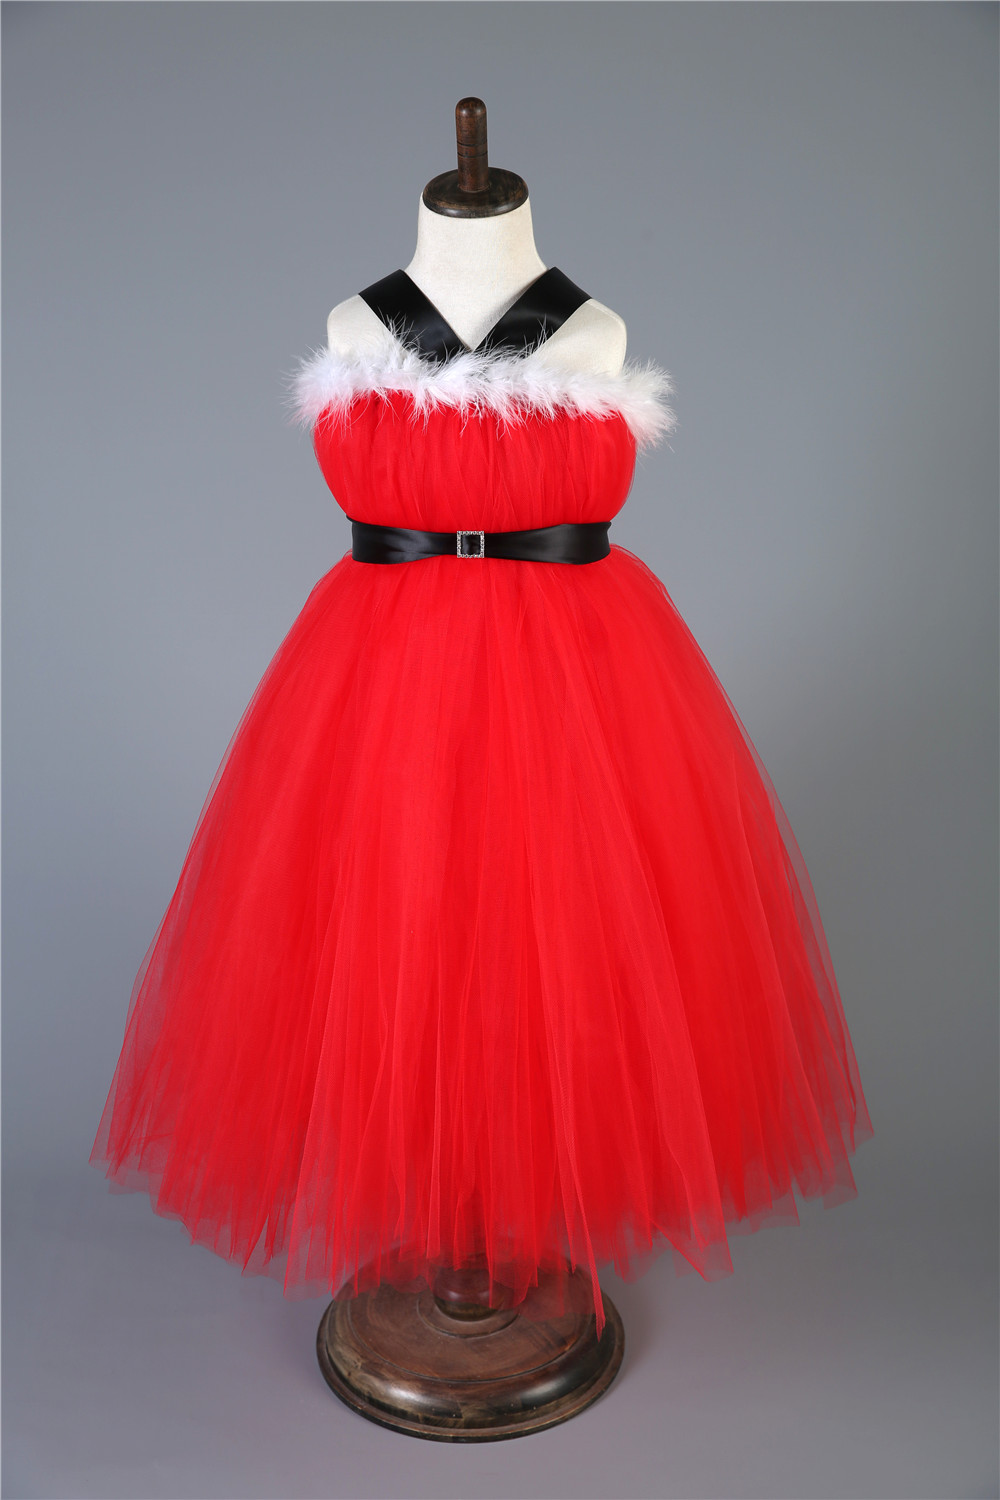 Children Christmas Dresses for Girls New Year Clothes Kids Baby Girls Xmas  Party Tutu Dress Costumes Red Tulle Princess Dress 4beccb981